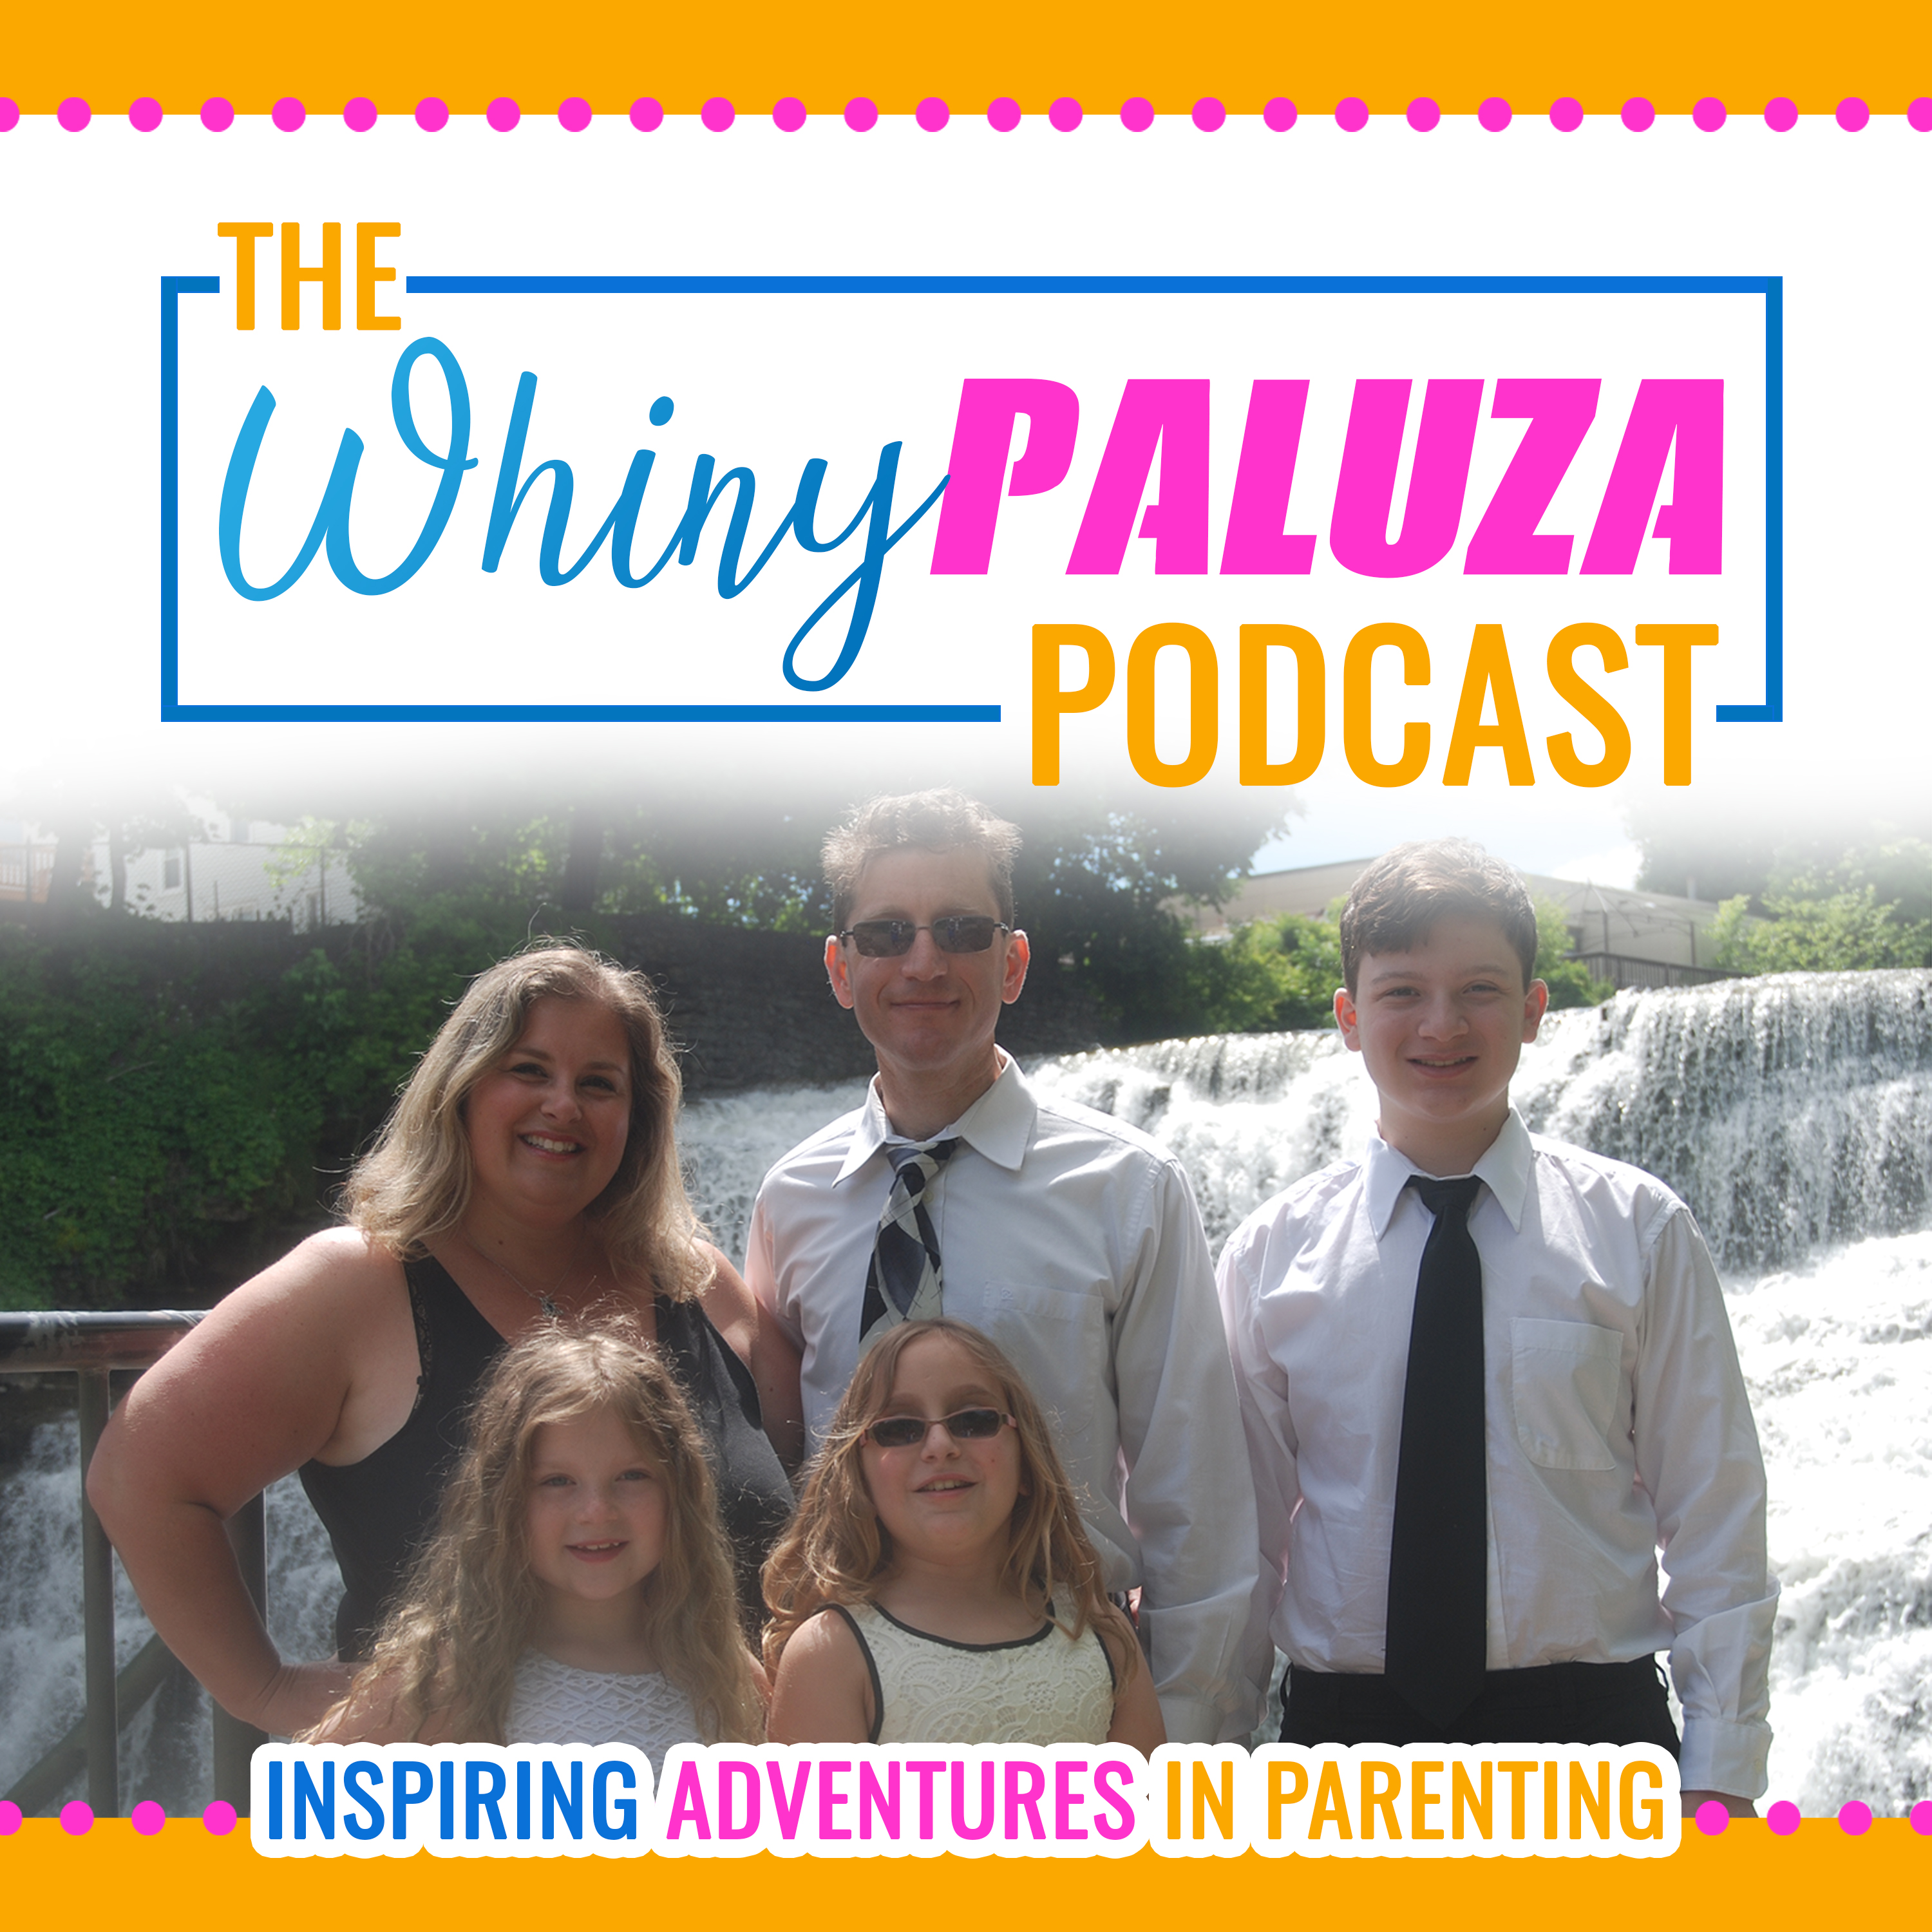 The Whinypaluza Podcast